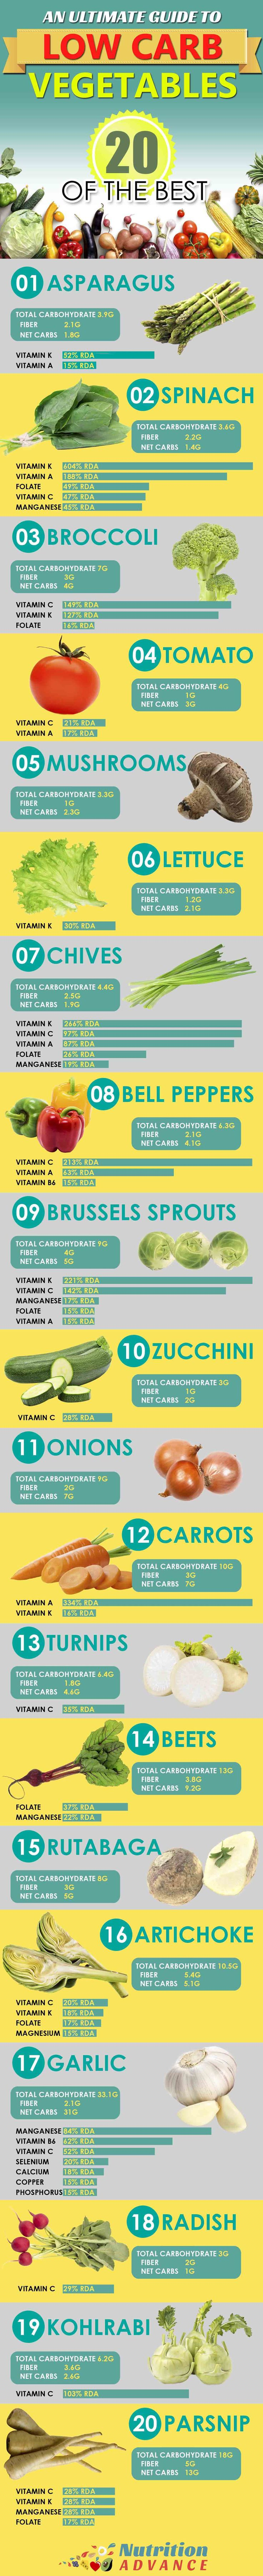 Food Infographic Here Are 20 Of The Best Low Carb Vegetables This